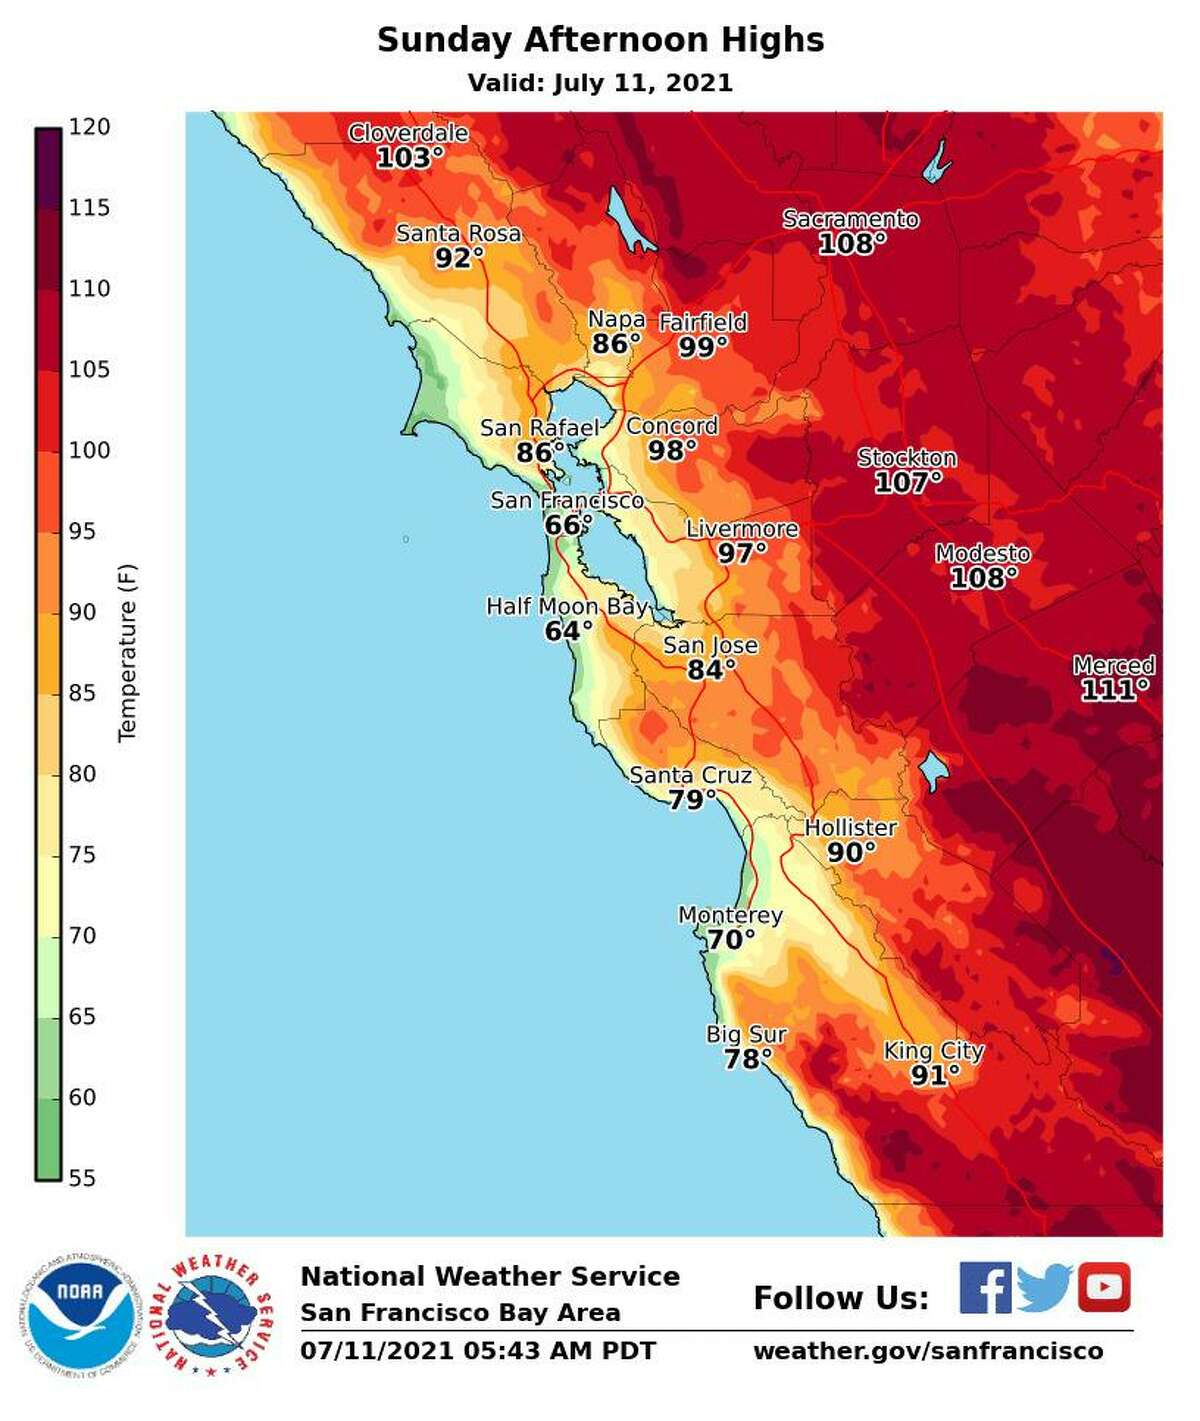 An excessive heat warning for parts of the Bay Area will remain in effect until 11 p.m. on Sunday.